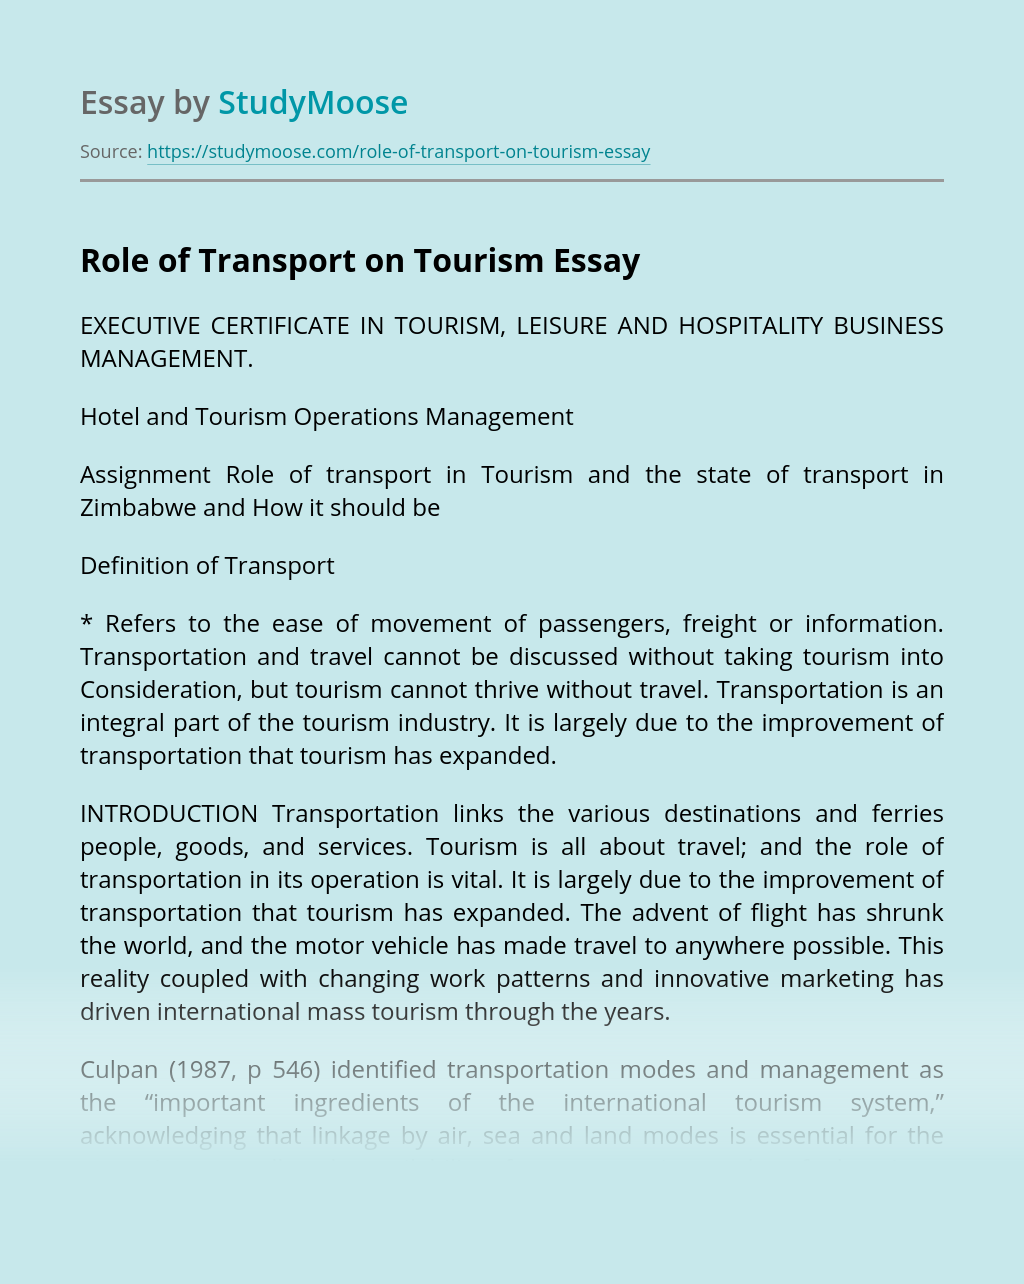 Role of Transport on Tourism